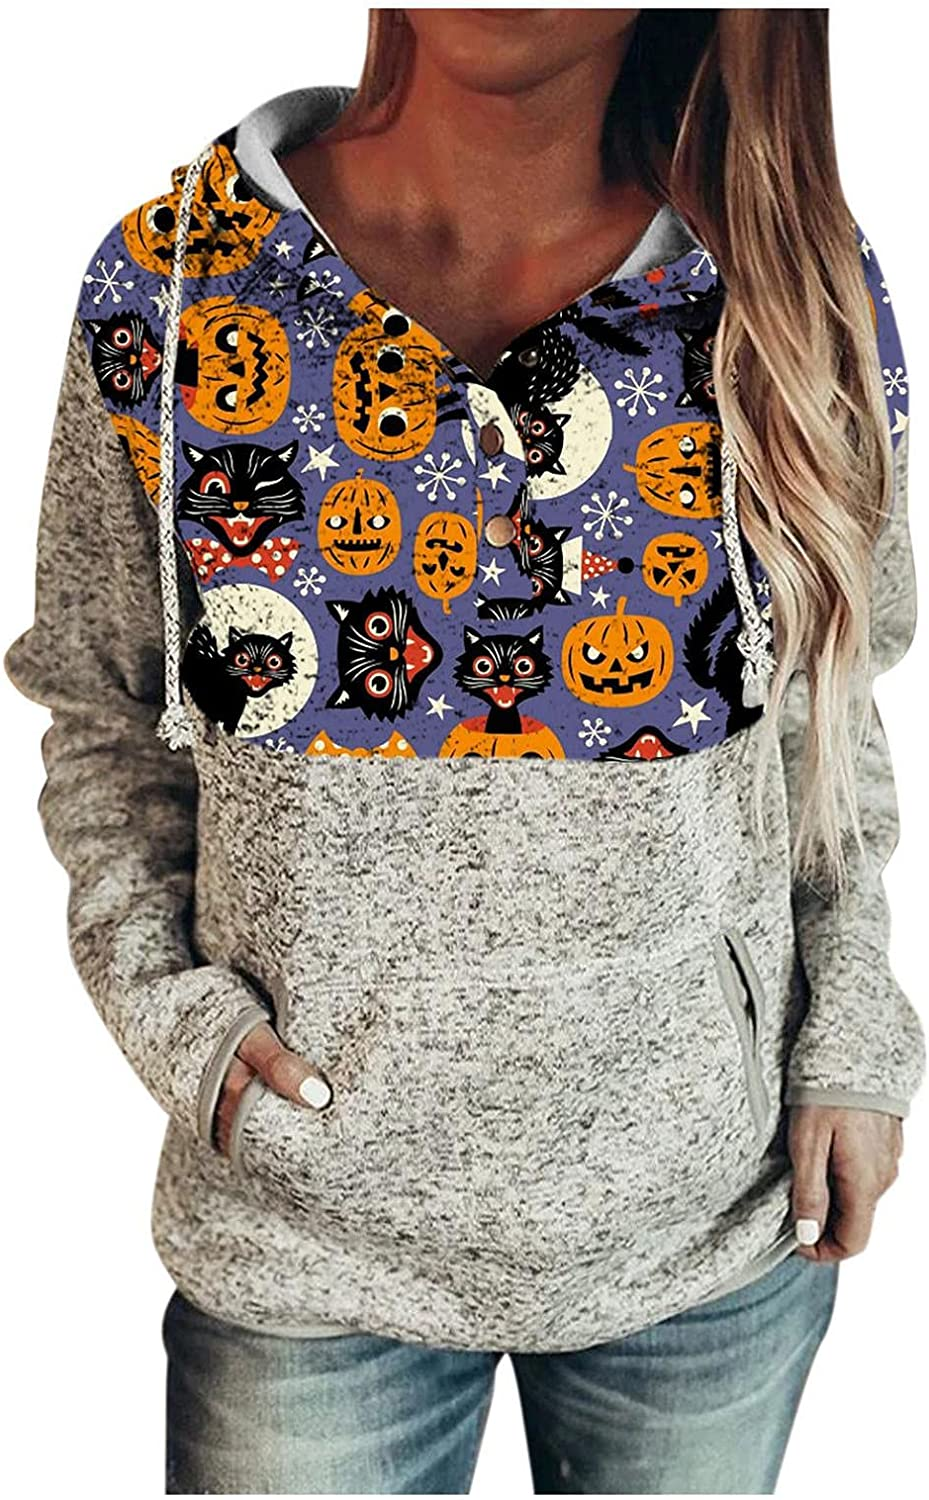 felwors Hoodies for Women, Womens Casual Halloween Print Tops Long Sleeve Drawstring Pullover Sweatshirts with Pockets